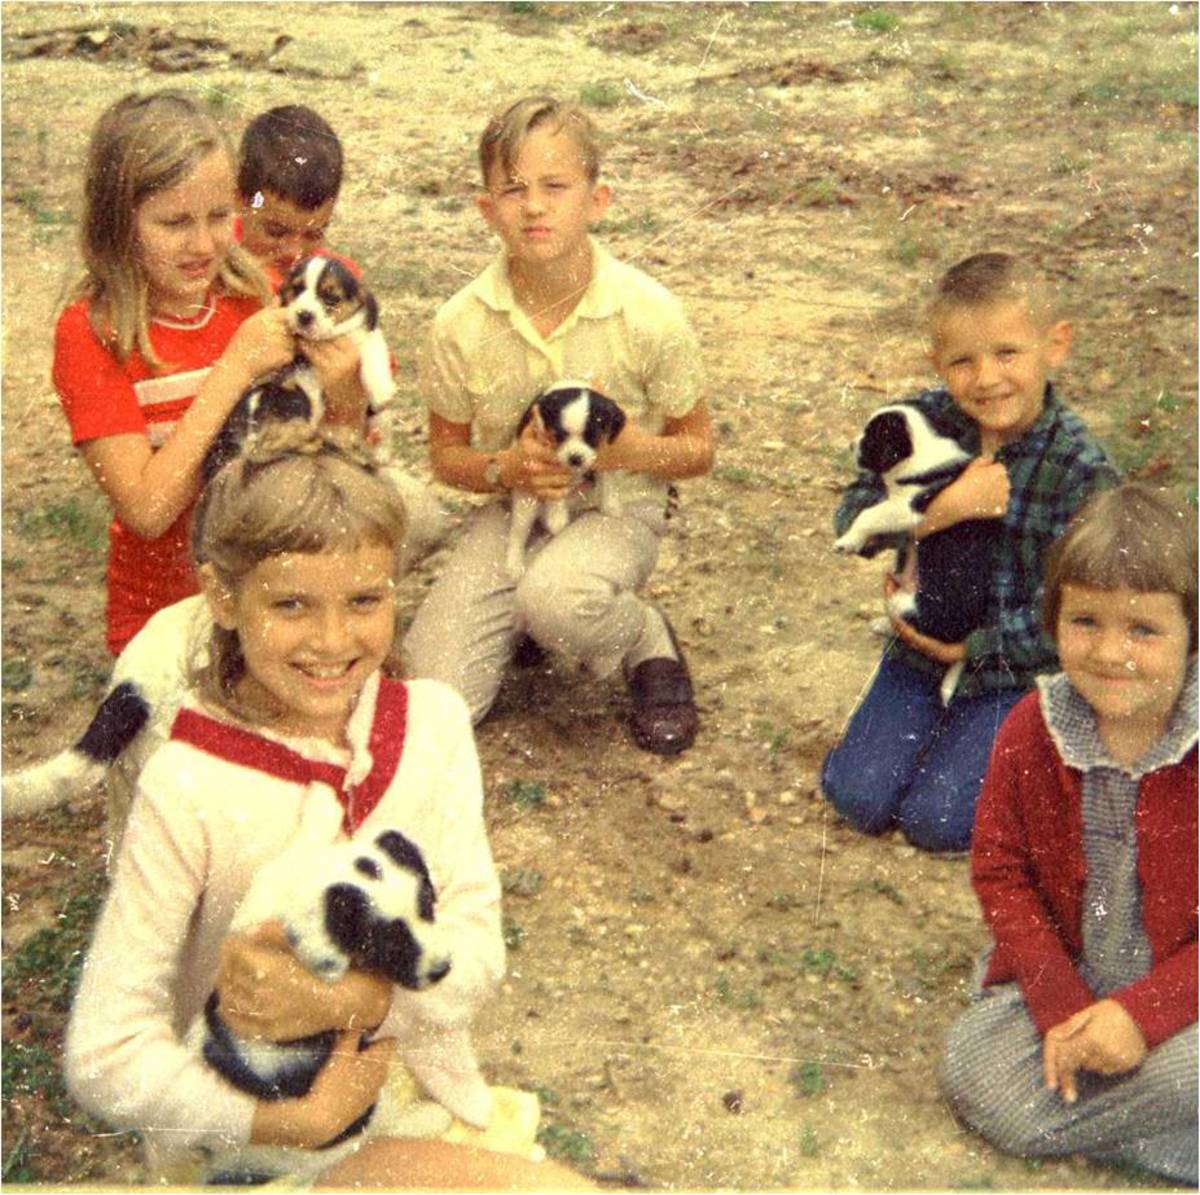 That's me, wearing a white sweater, on the front left holding a puppy.  My sister who is five years younger than me is to the front right and not holding a puppy.  My brother is behind her. The rest are friends.